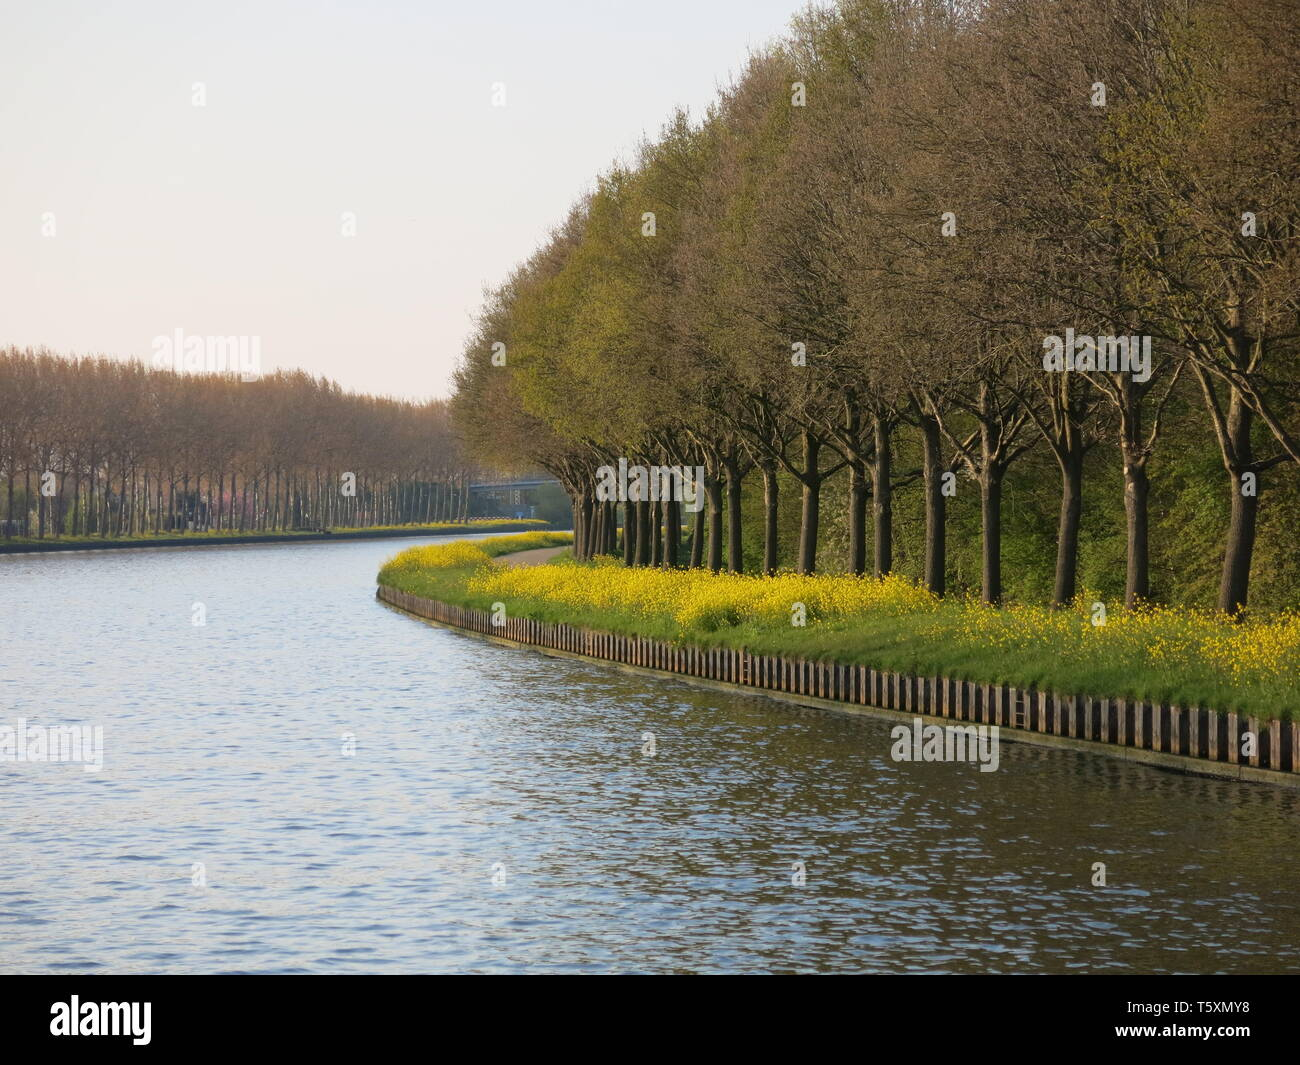 Approaching a bend whilst cruising along the Amsterdam-Rhine canal; a row of trees in the early evening light with a carpet of yellow spring flowers - Stock Image